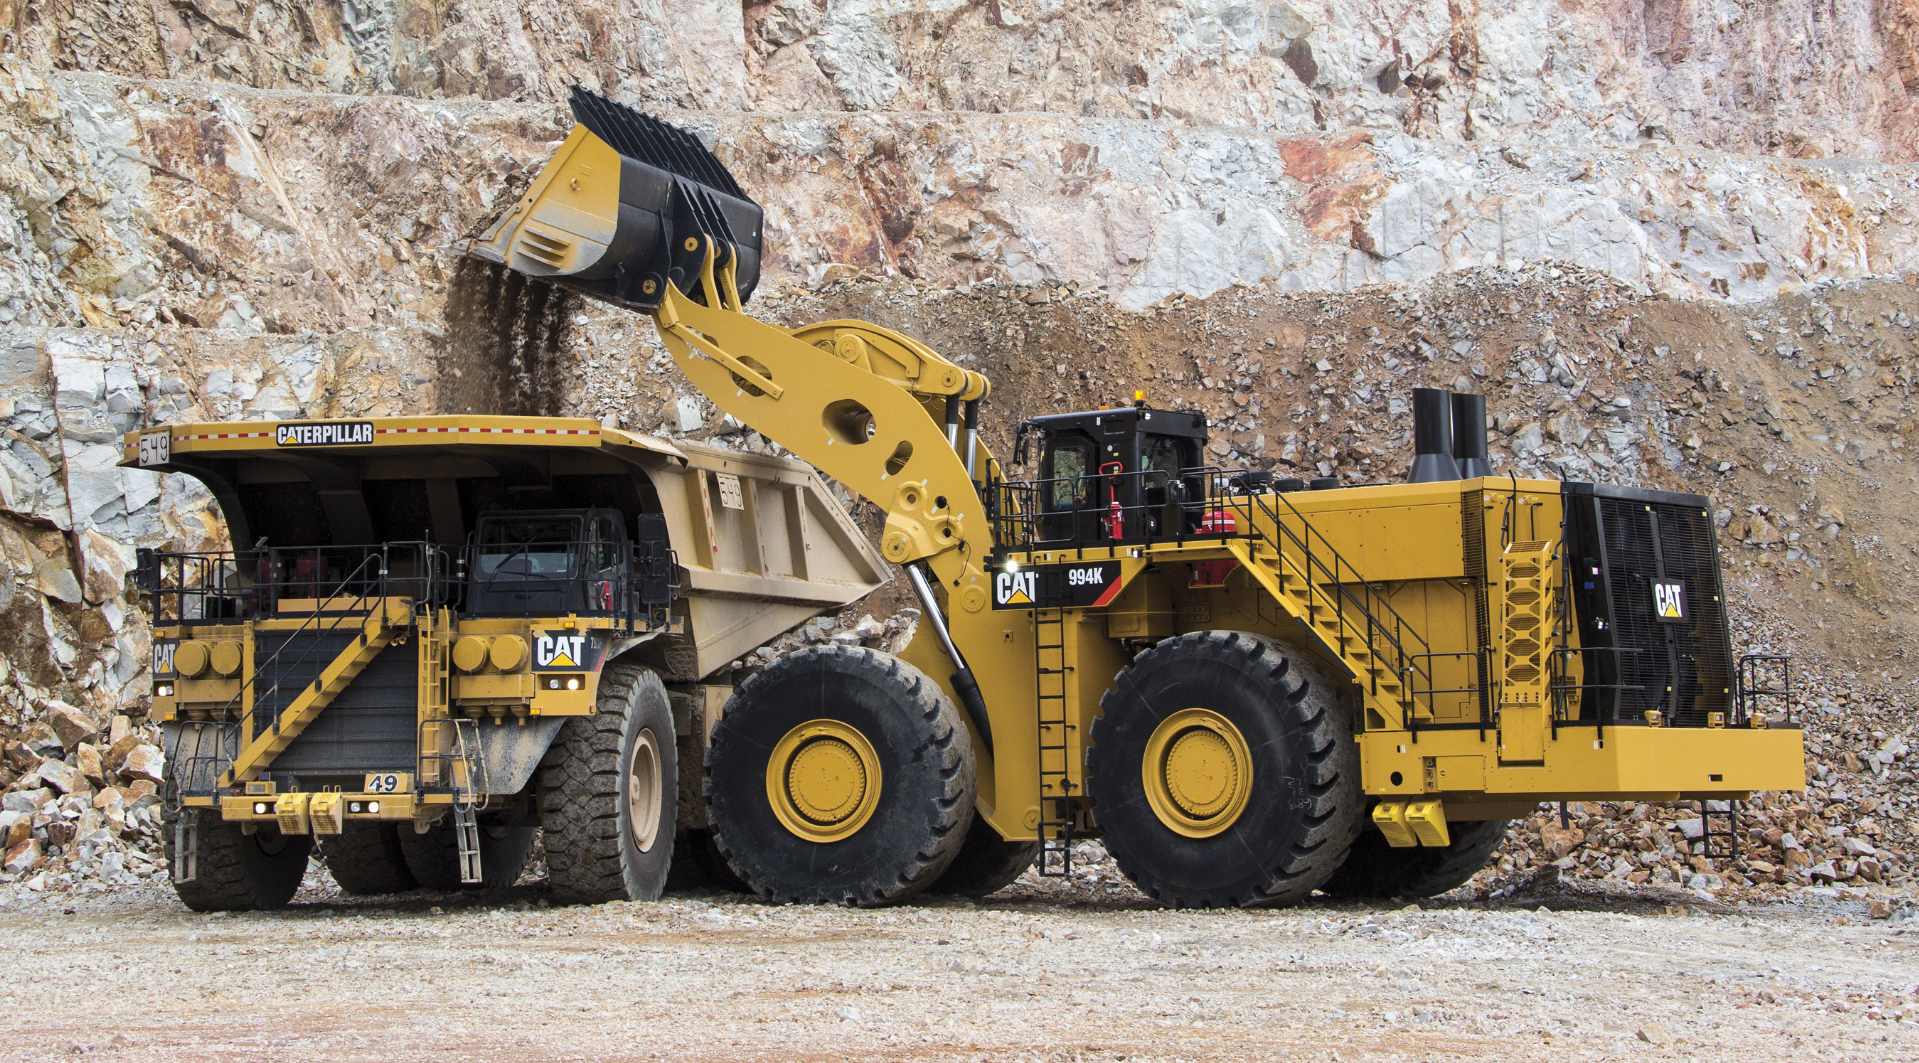 Cat 994K Wheel Loader loads Cat 793F Mining Truck.jpg